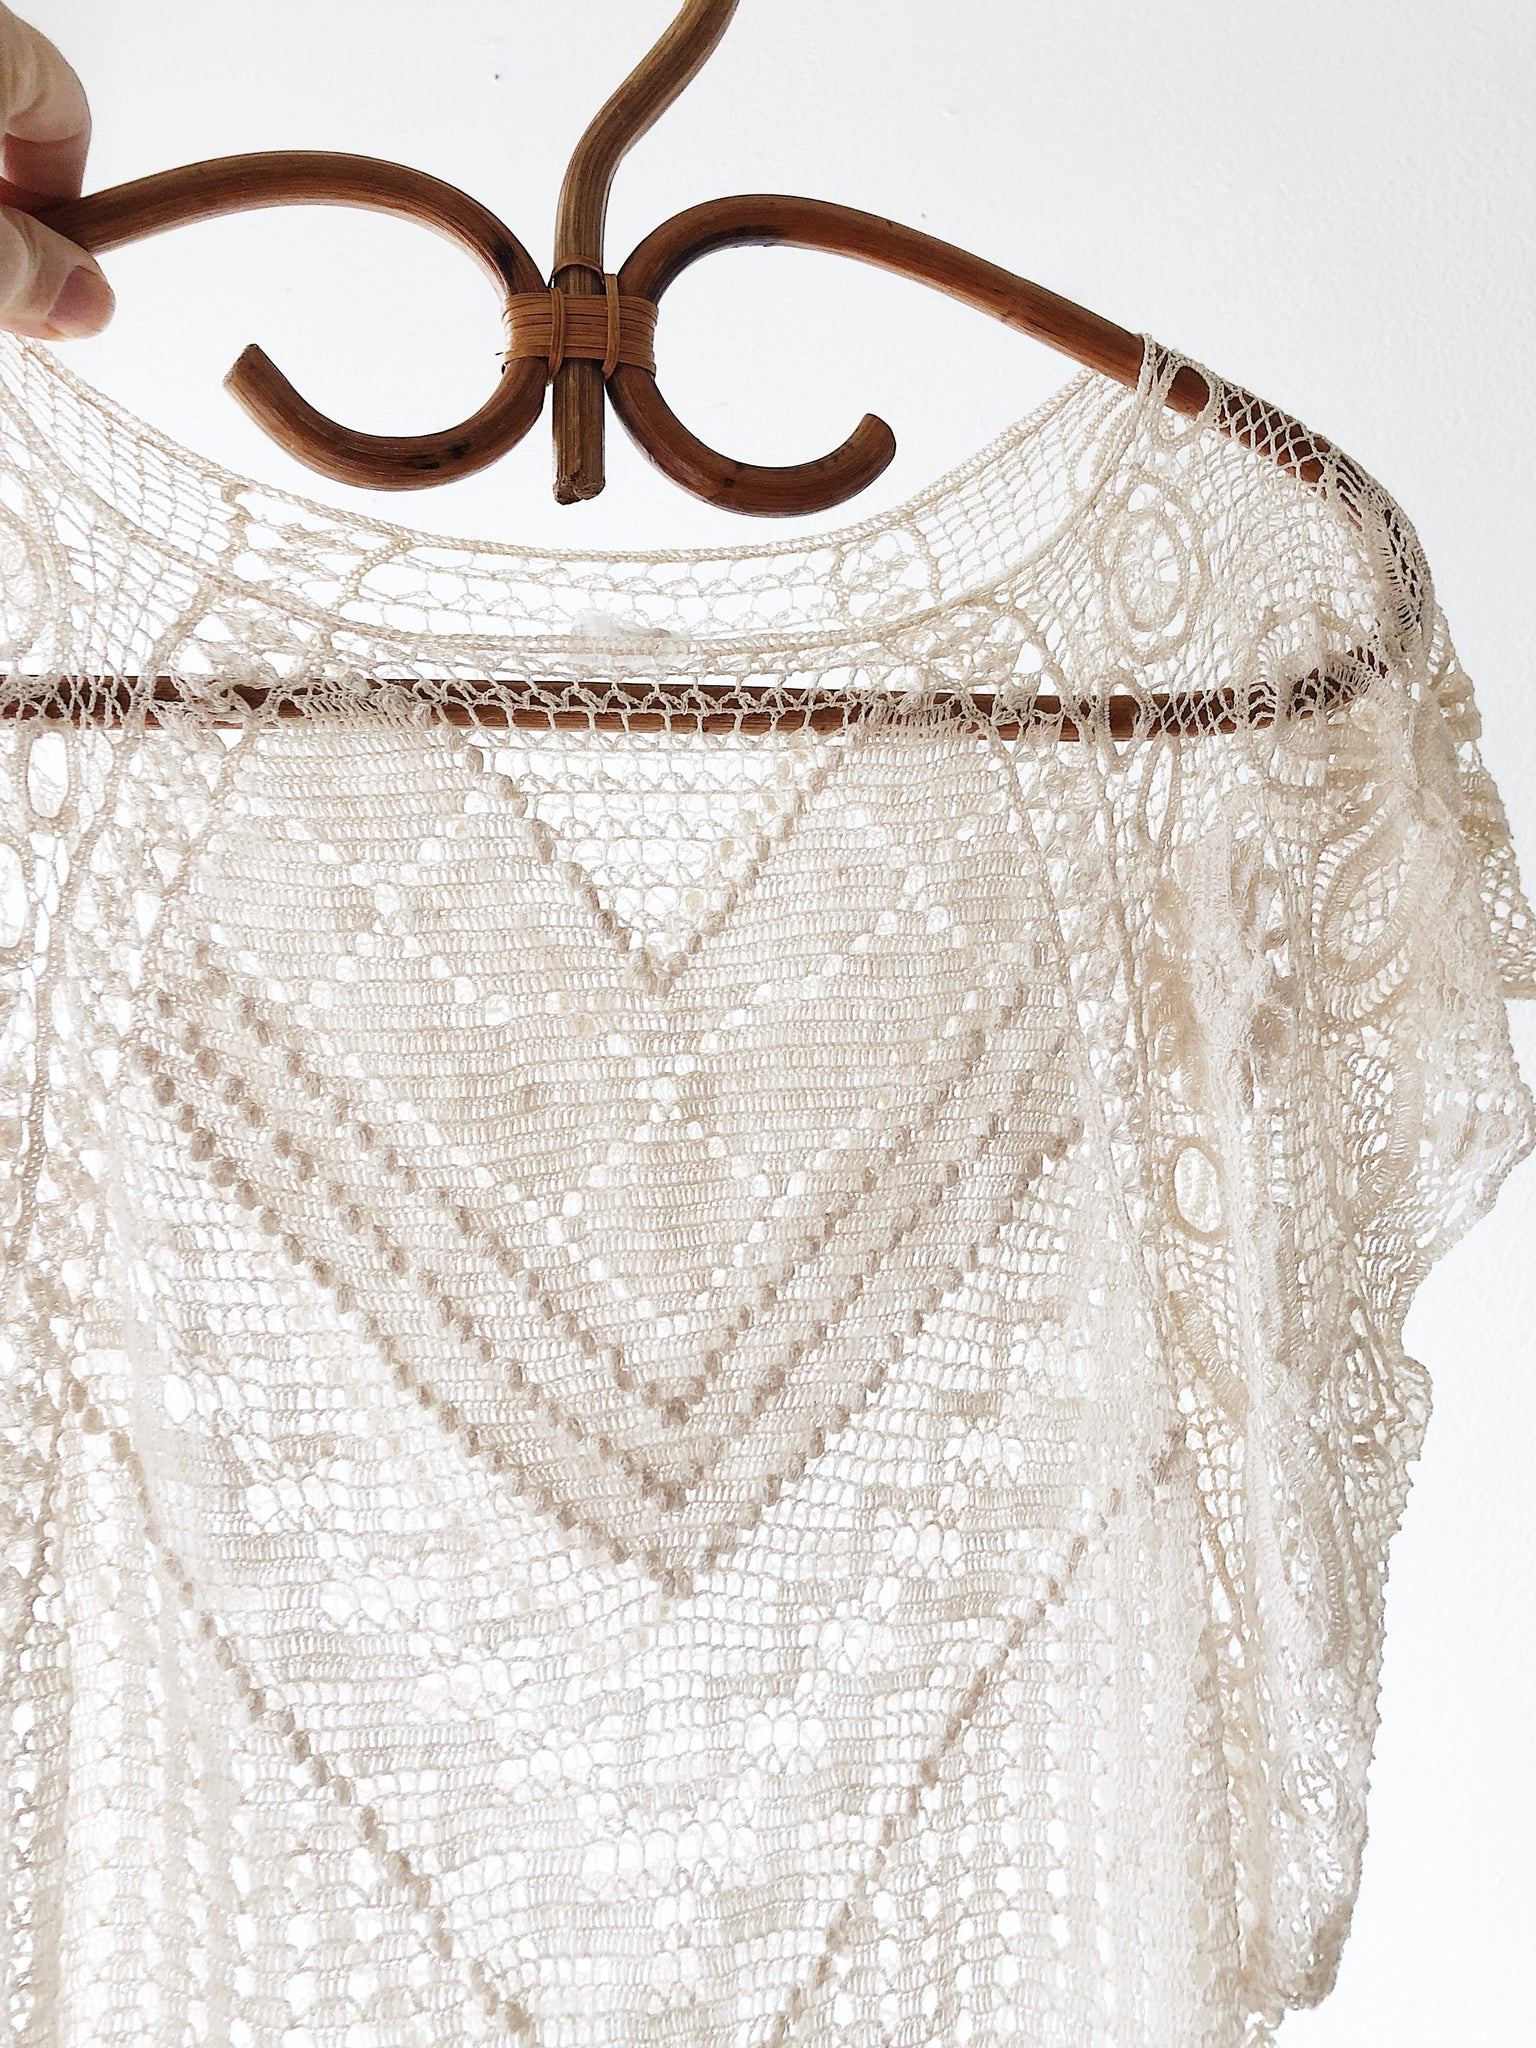 Vintage Tatted Lace 1970s Top